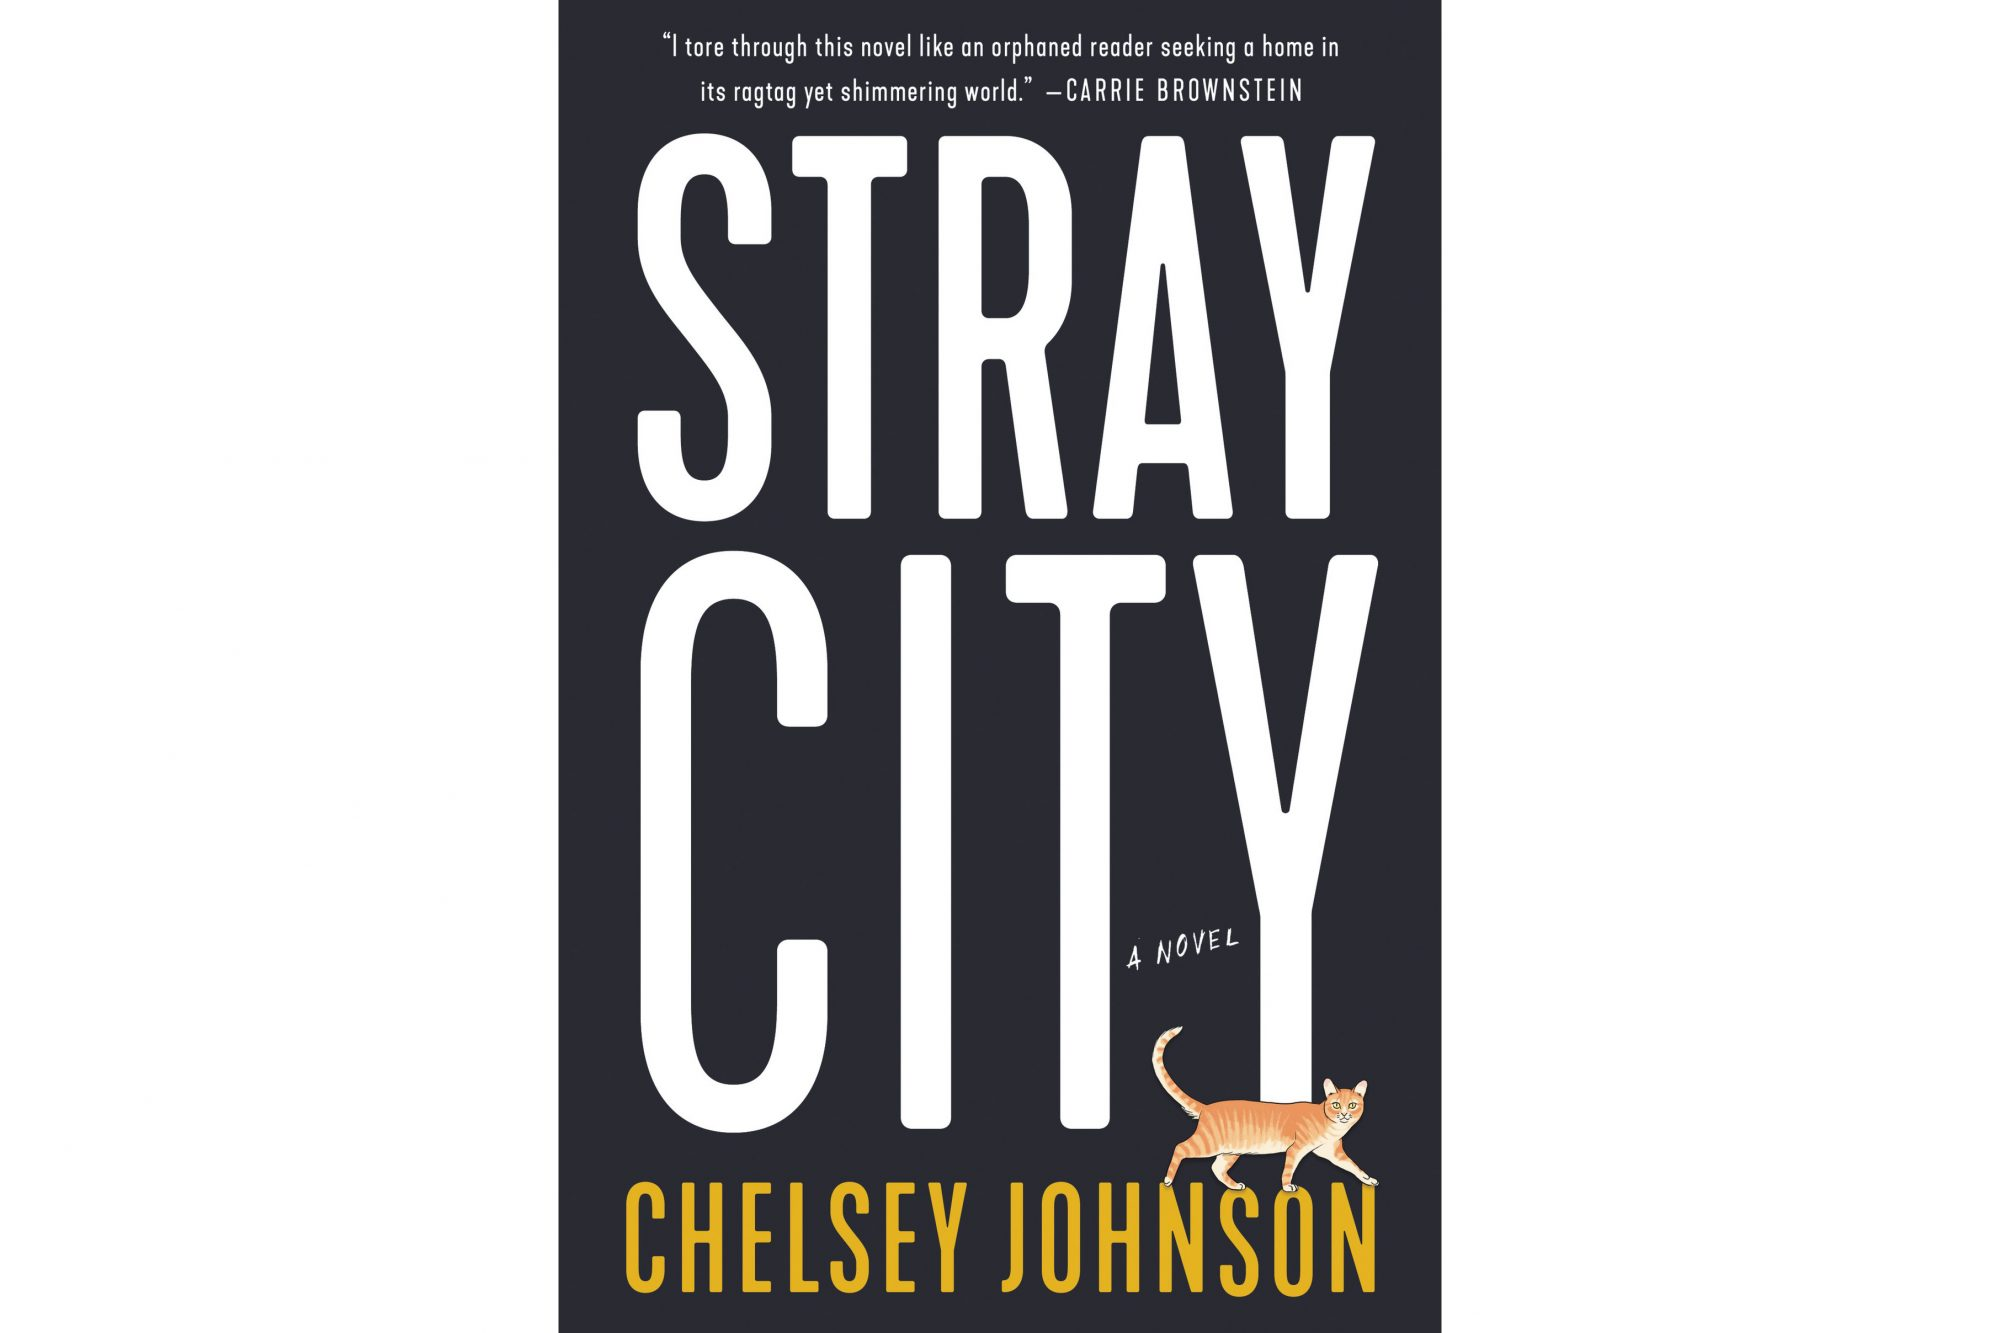 Stray City, by Chelsey Johnson